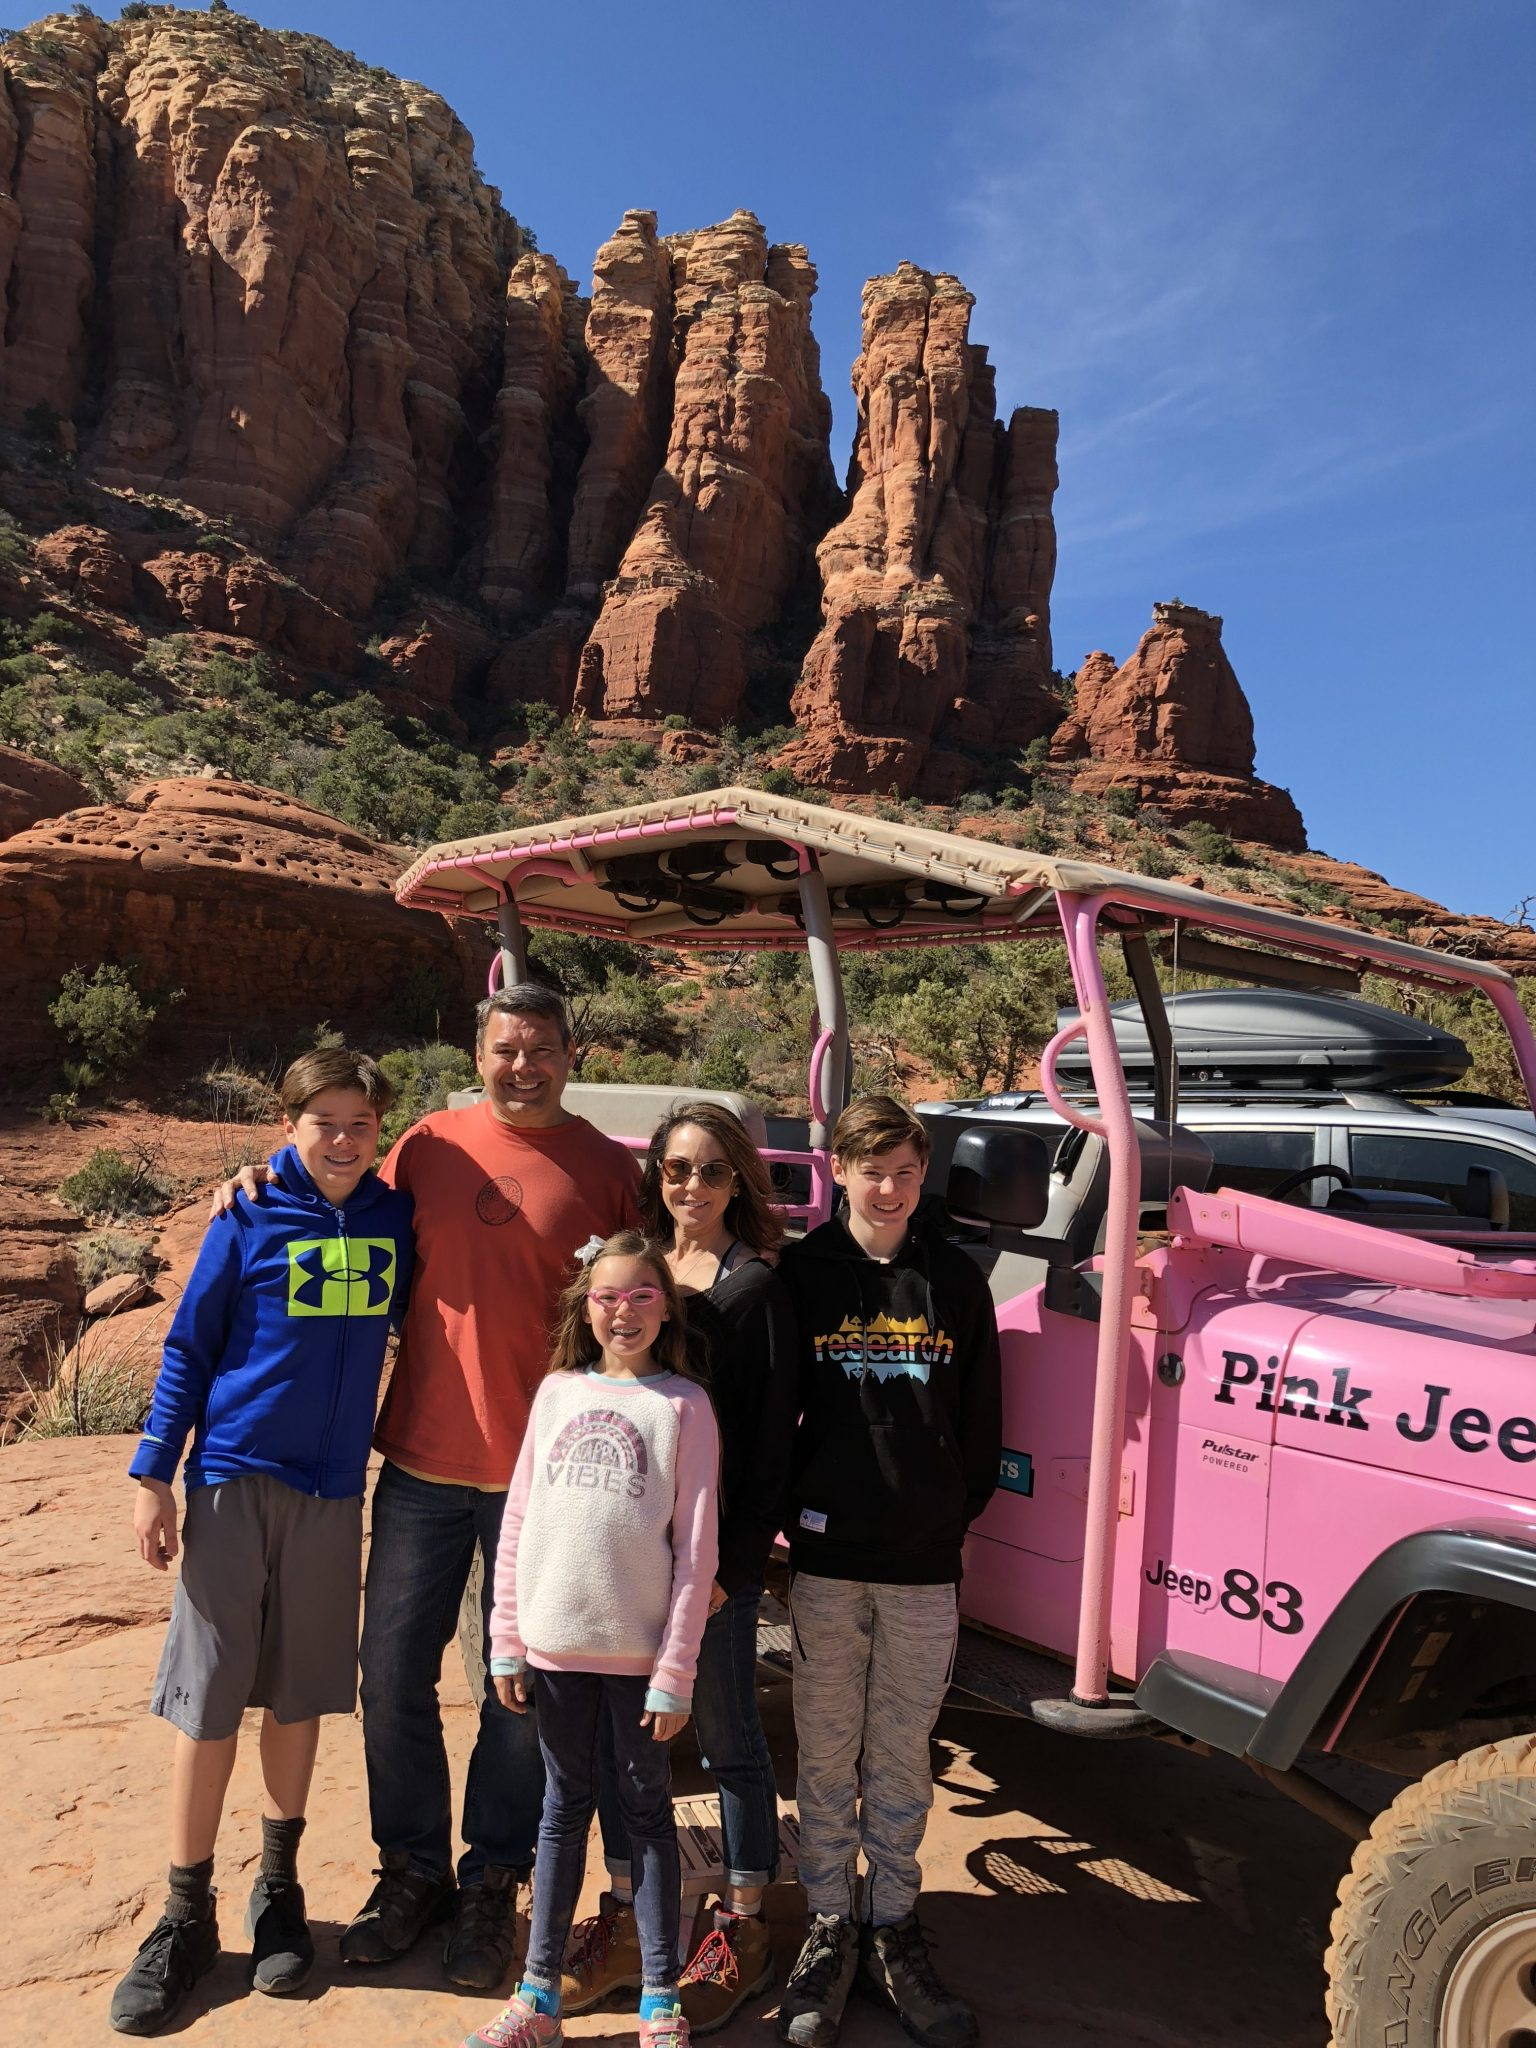 Broken Arrow Pink Jeep Tour - Just a Mom with Her Blog